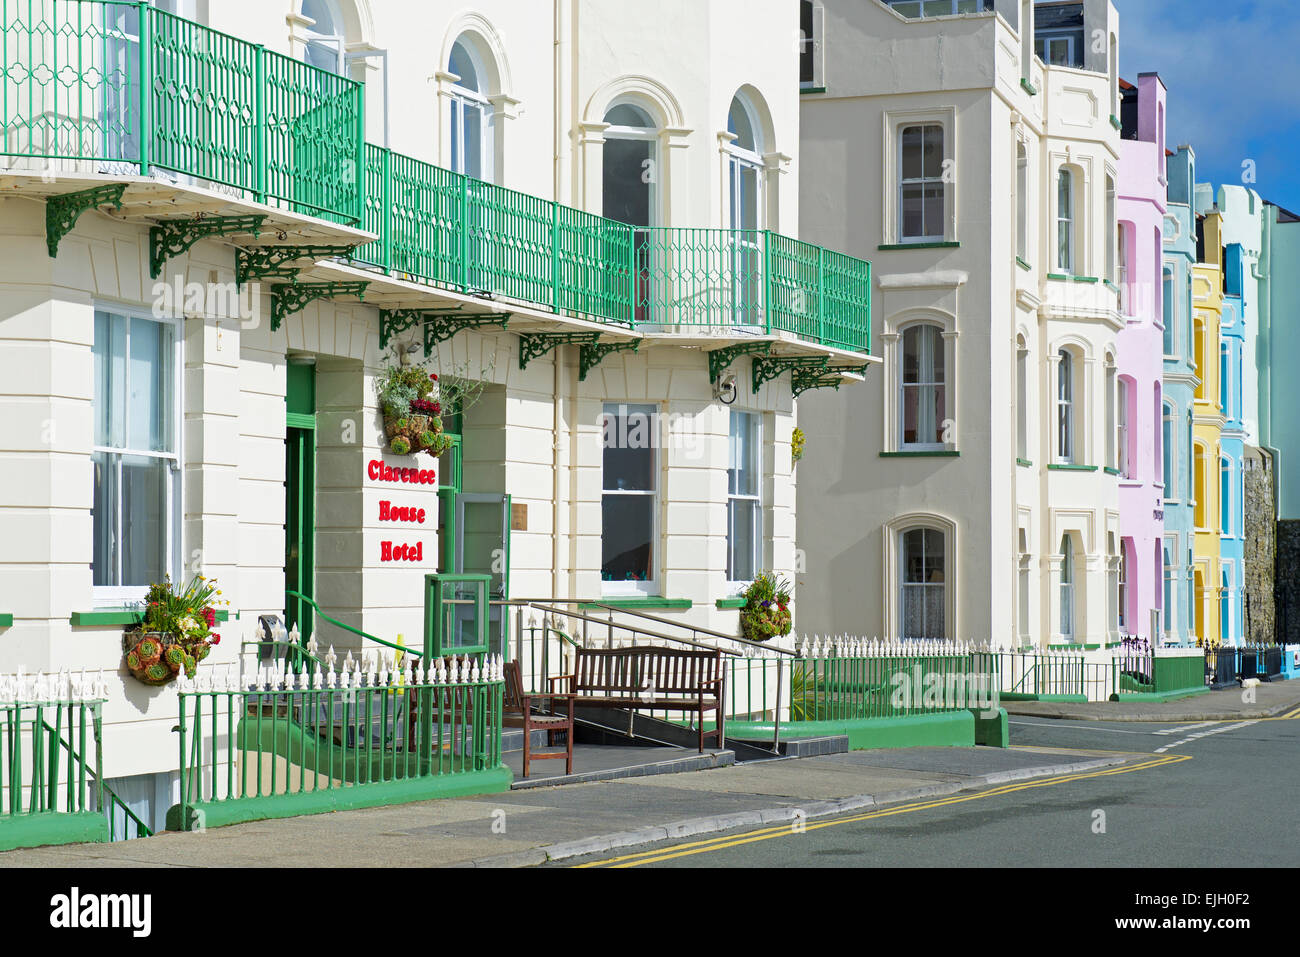 Das Clarence House Hotel Tenby Pembrokeshire Wales Uk